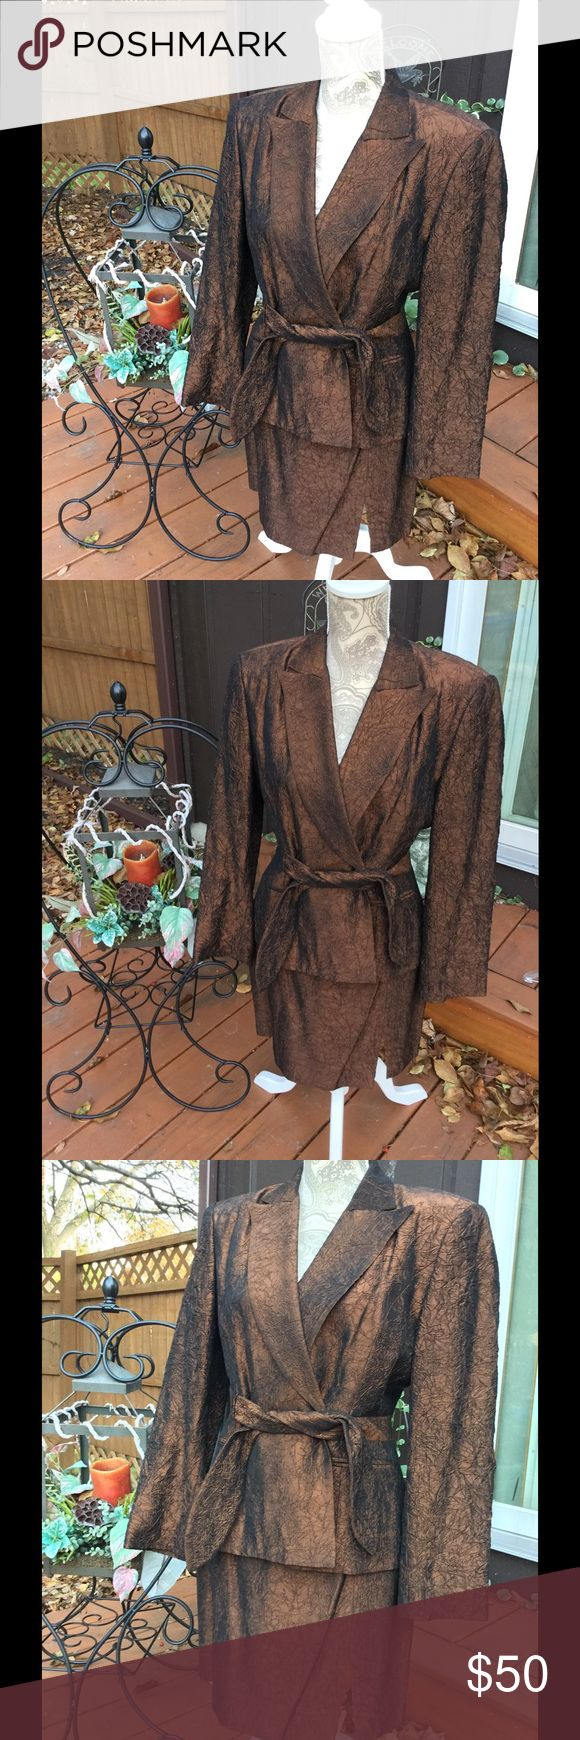 CACHE VTG WOMENS SKIRT SUIT SIZE 4 COPPER BEAUTIFUL VINTAGE CACHE WOMEN'S SKIRT SUIT.  THE COLOR IS IRIDESCENT DARK BROWN COPPER CRINKLED LOOKING MATERIAL.  THE SIZE IS 4. THE JACKET ALSO HAS AN ATTACHED BELT.  THE SKIRT HAS A ZIPPER IN BACK AND SLIT IN FRONT. Cache Other